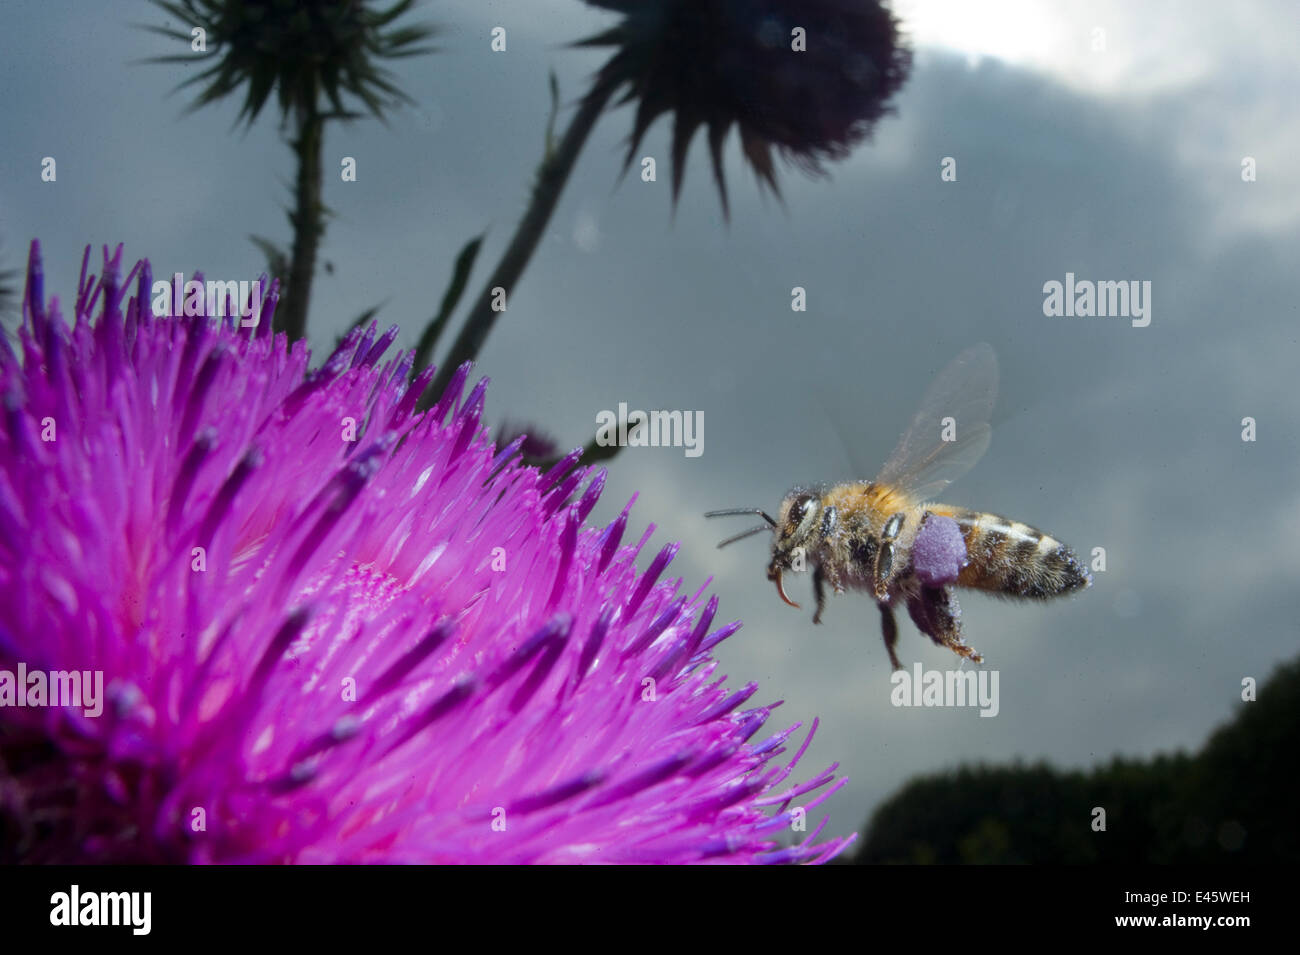 Honey bee (Apis mellifera) hovering over a purple flower. Paris, France - Stock Image